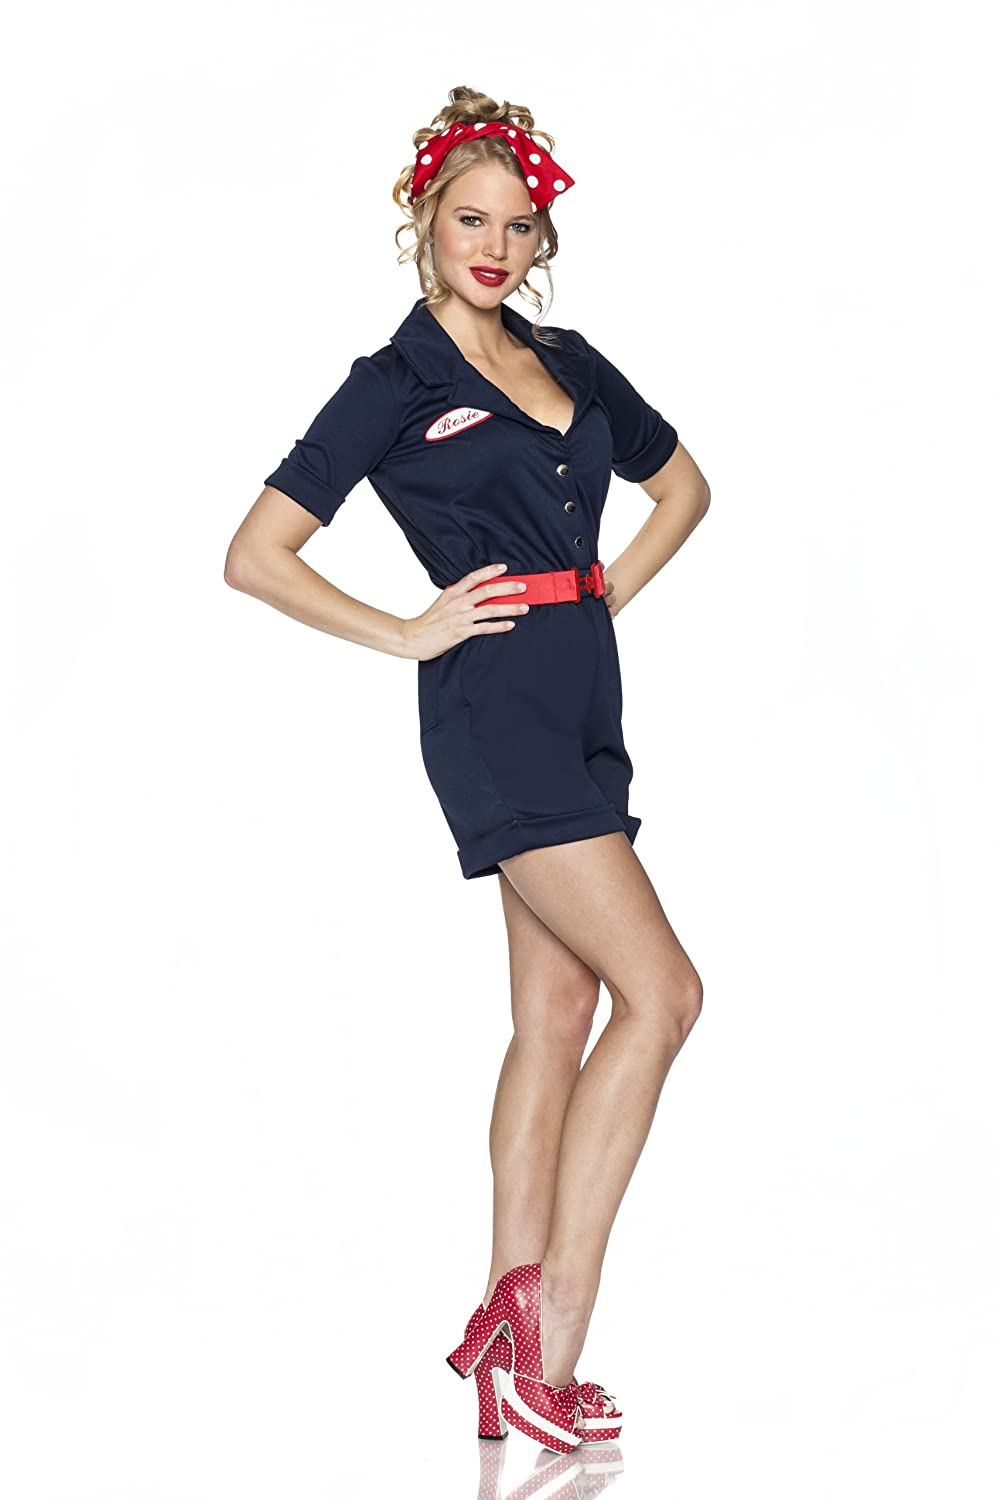 1940s Costumes- WW2, Nurse, Pinup, Rosie the Riveter Delicious Riveting Rosie Costume $60.96 AT vintagedancer.com